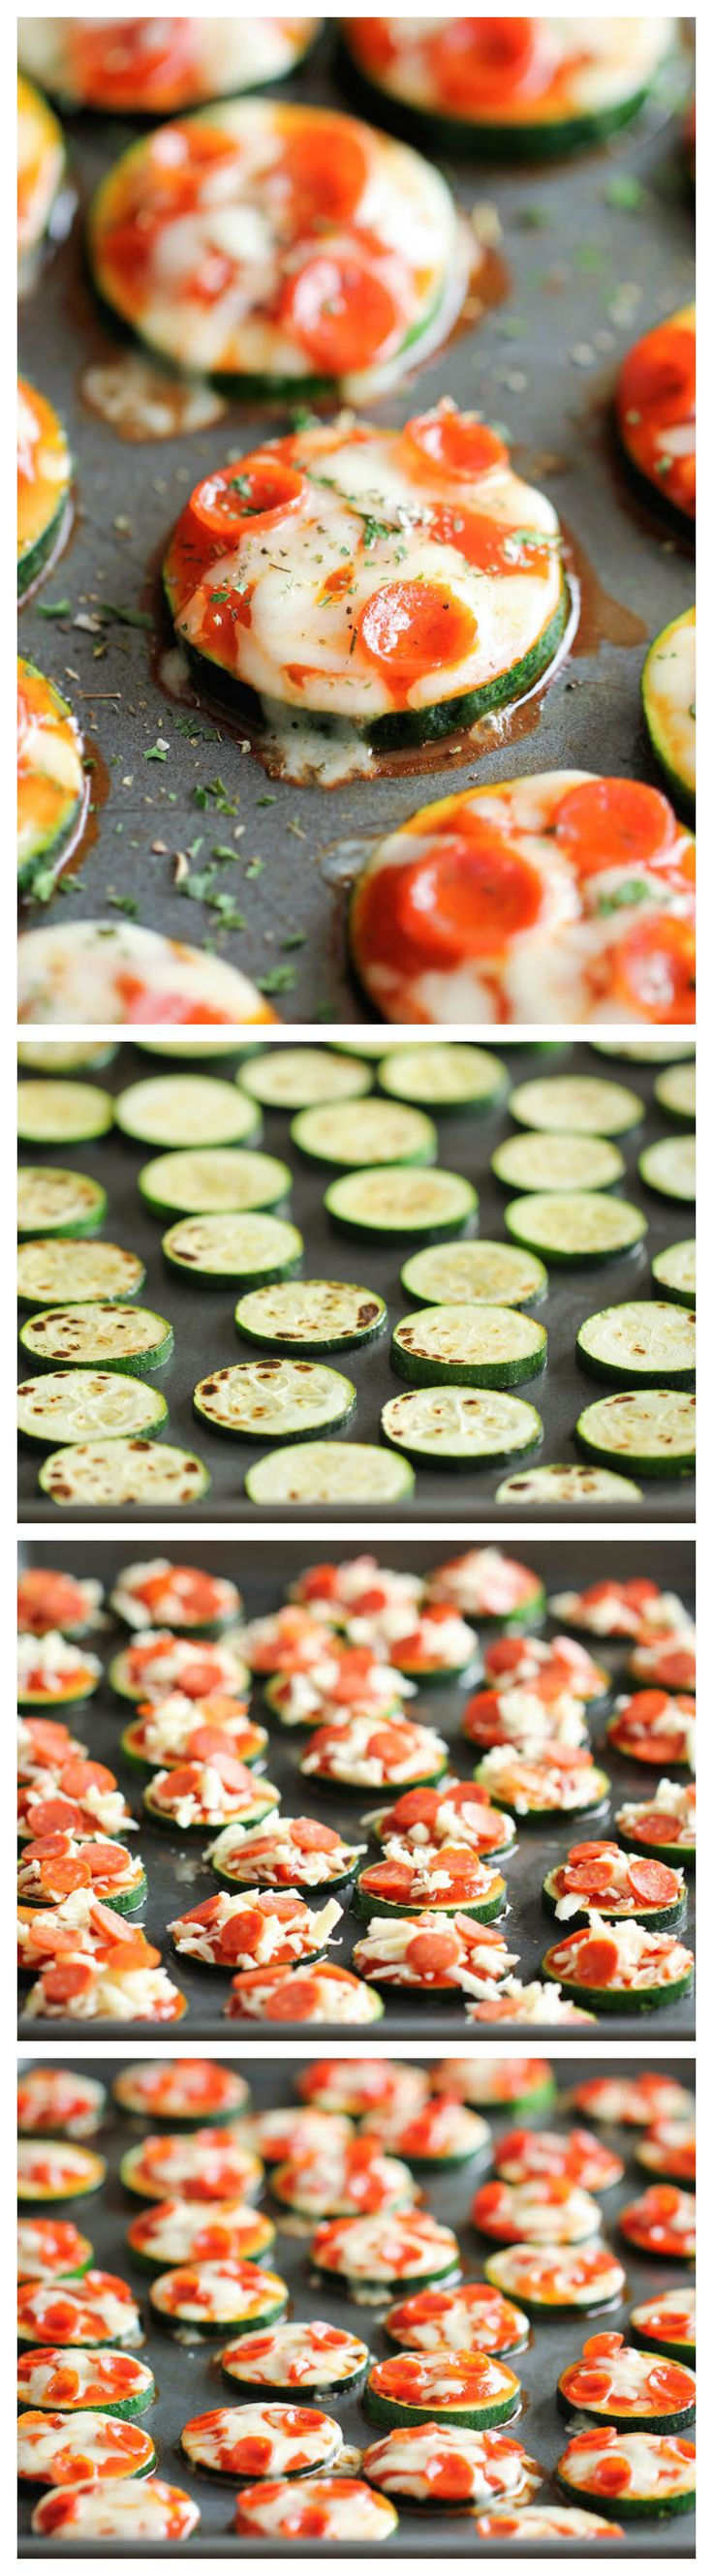 Healthy Snacks: Zucchini Pizza Bites